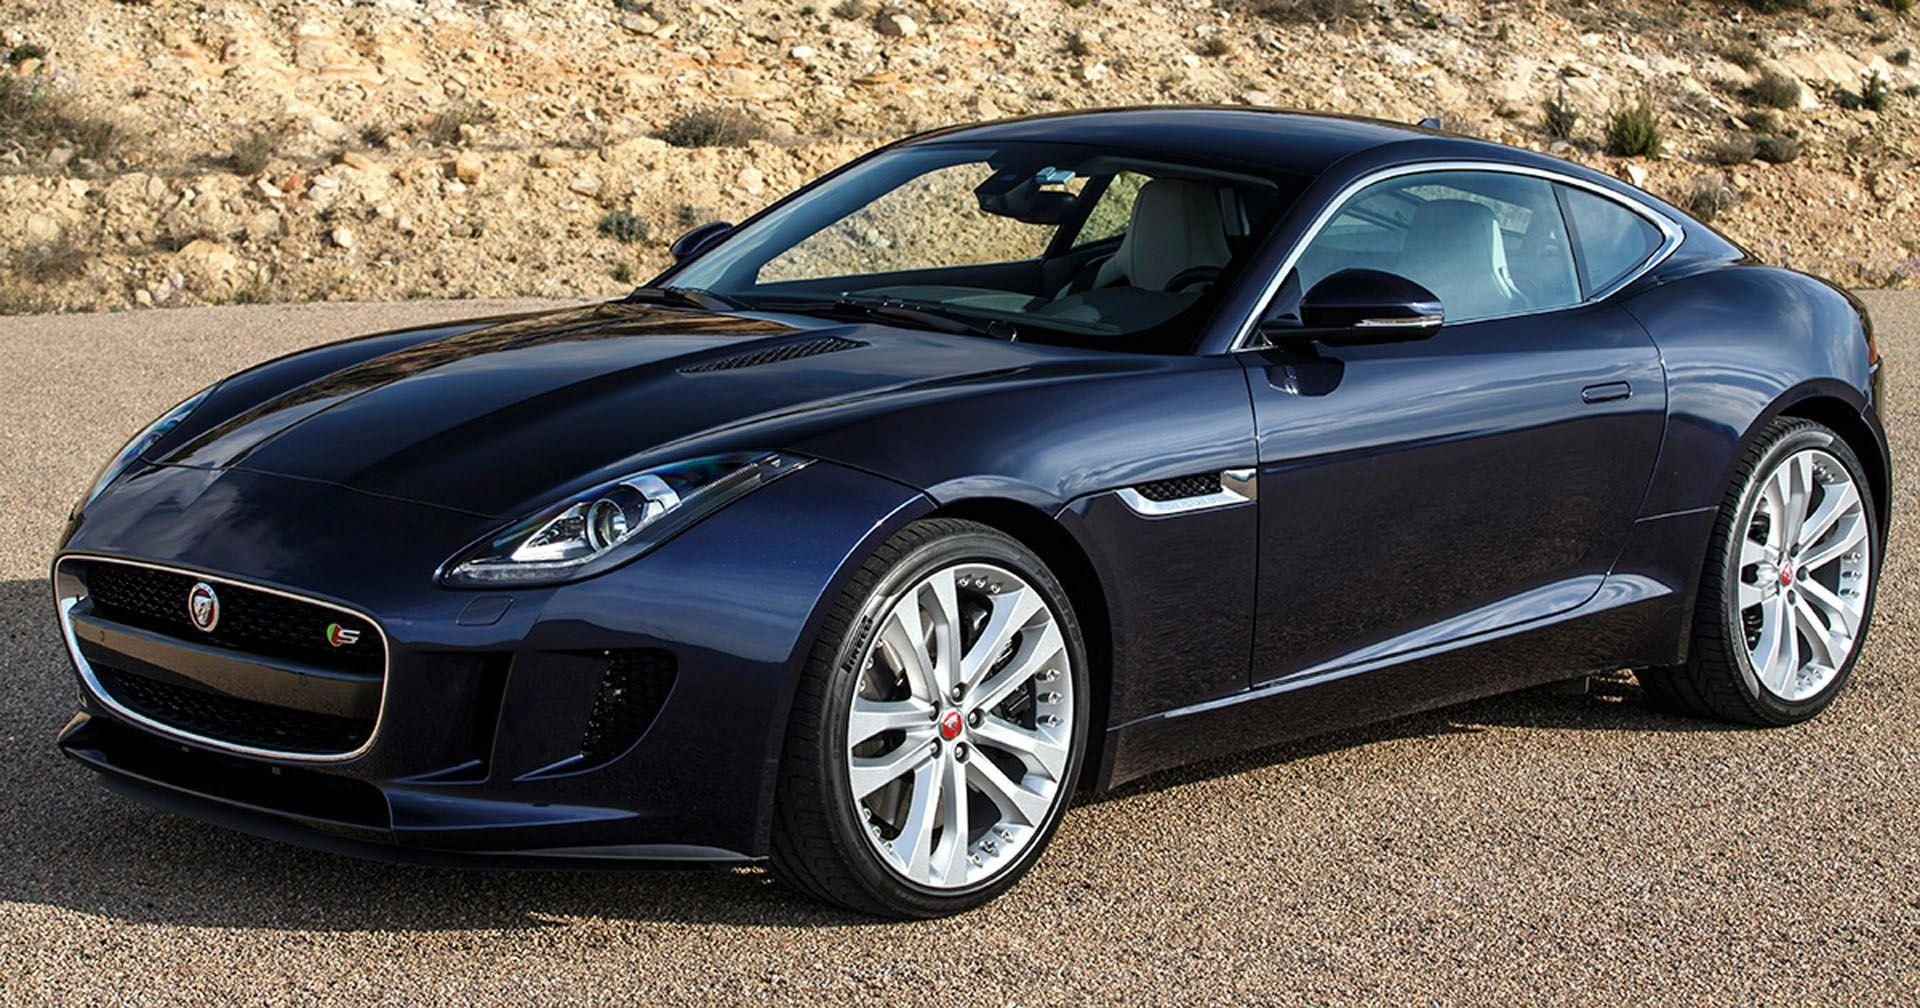 Jaguar F Type 2015 Black Edition   All About Gallery Car ...